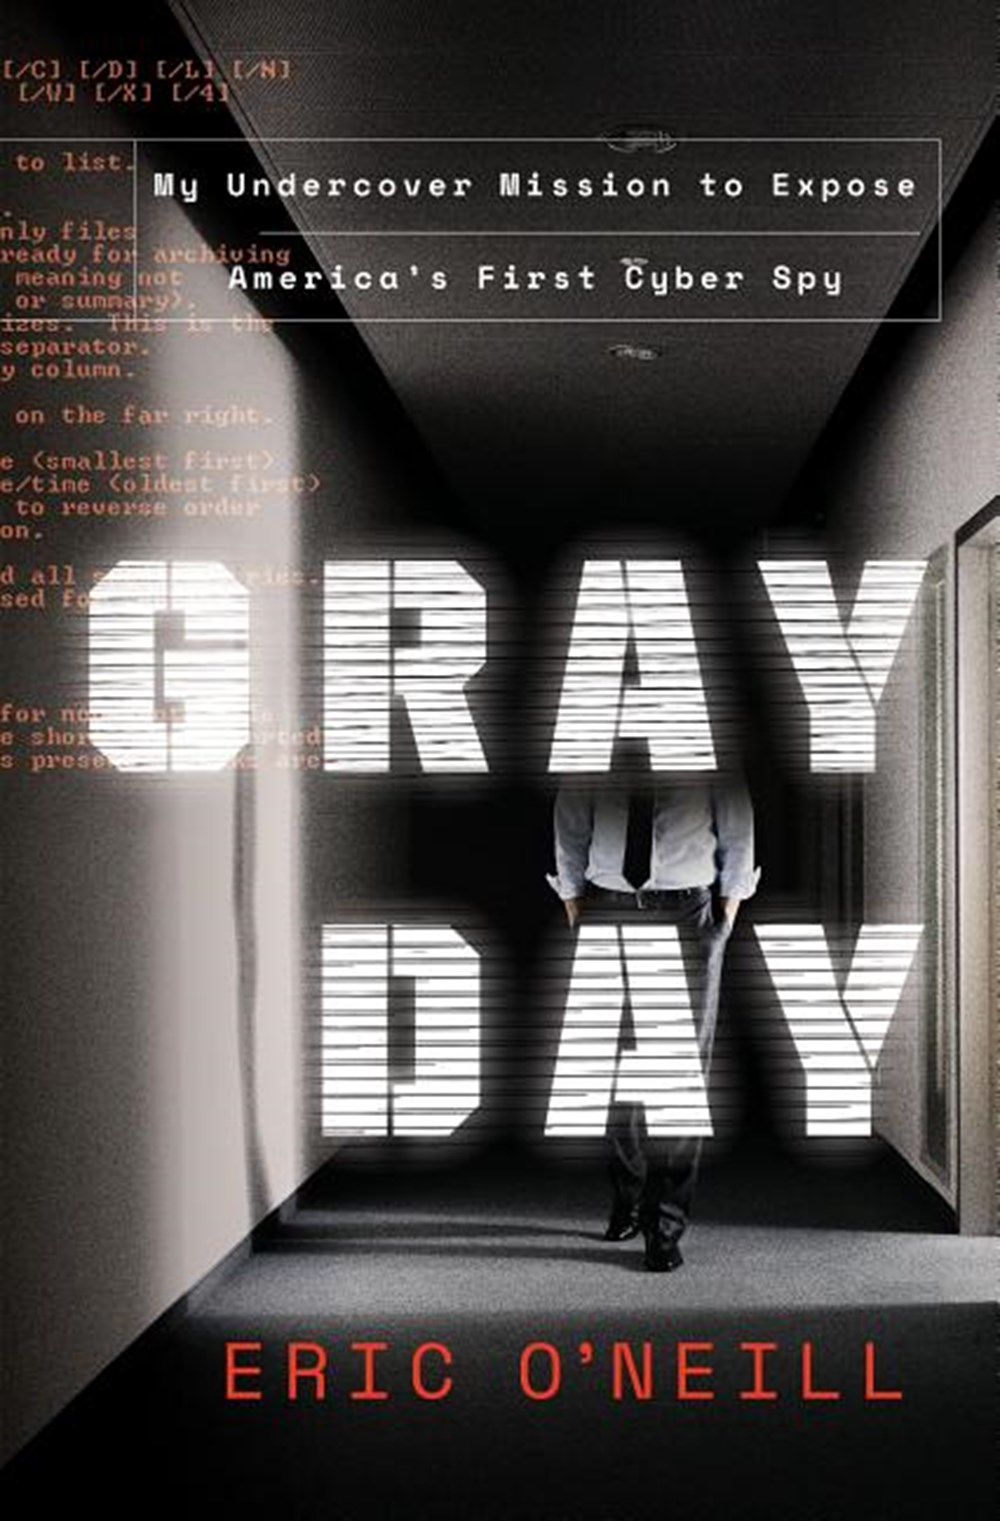 Gray Day My Undercover Mission to Expose America's First Cyber Spy